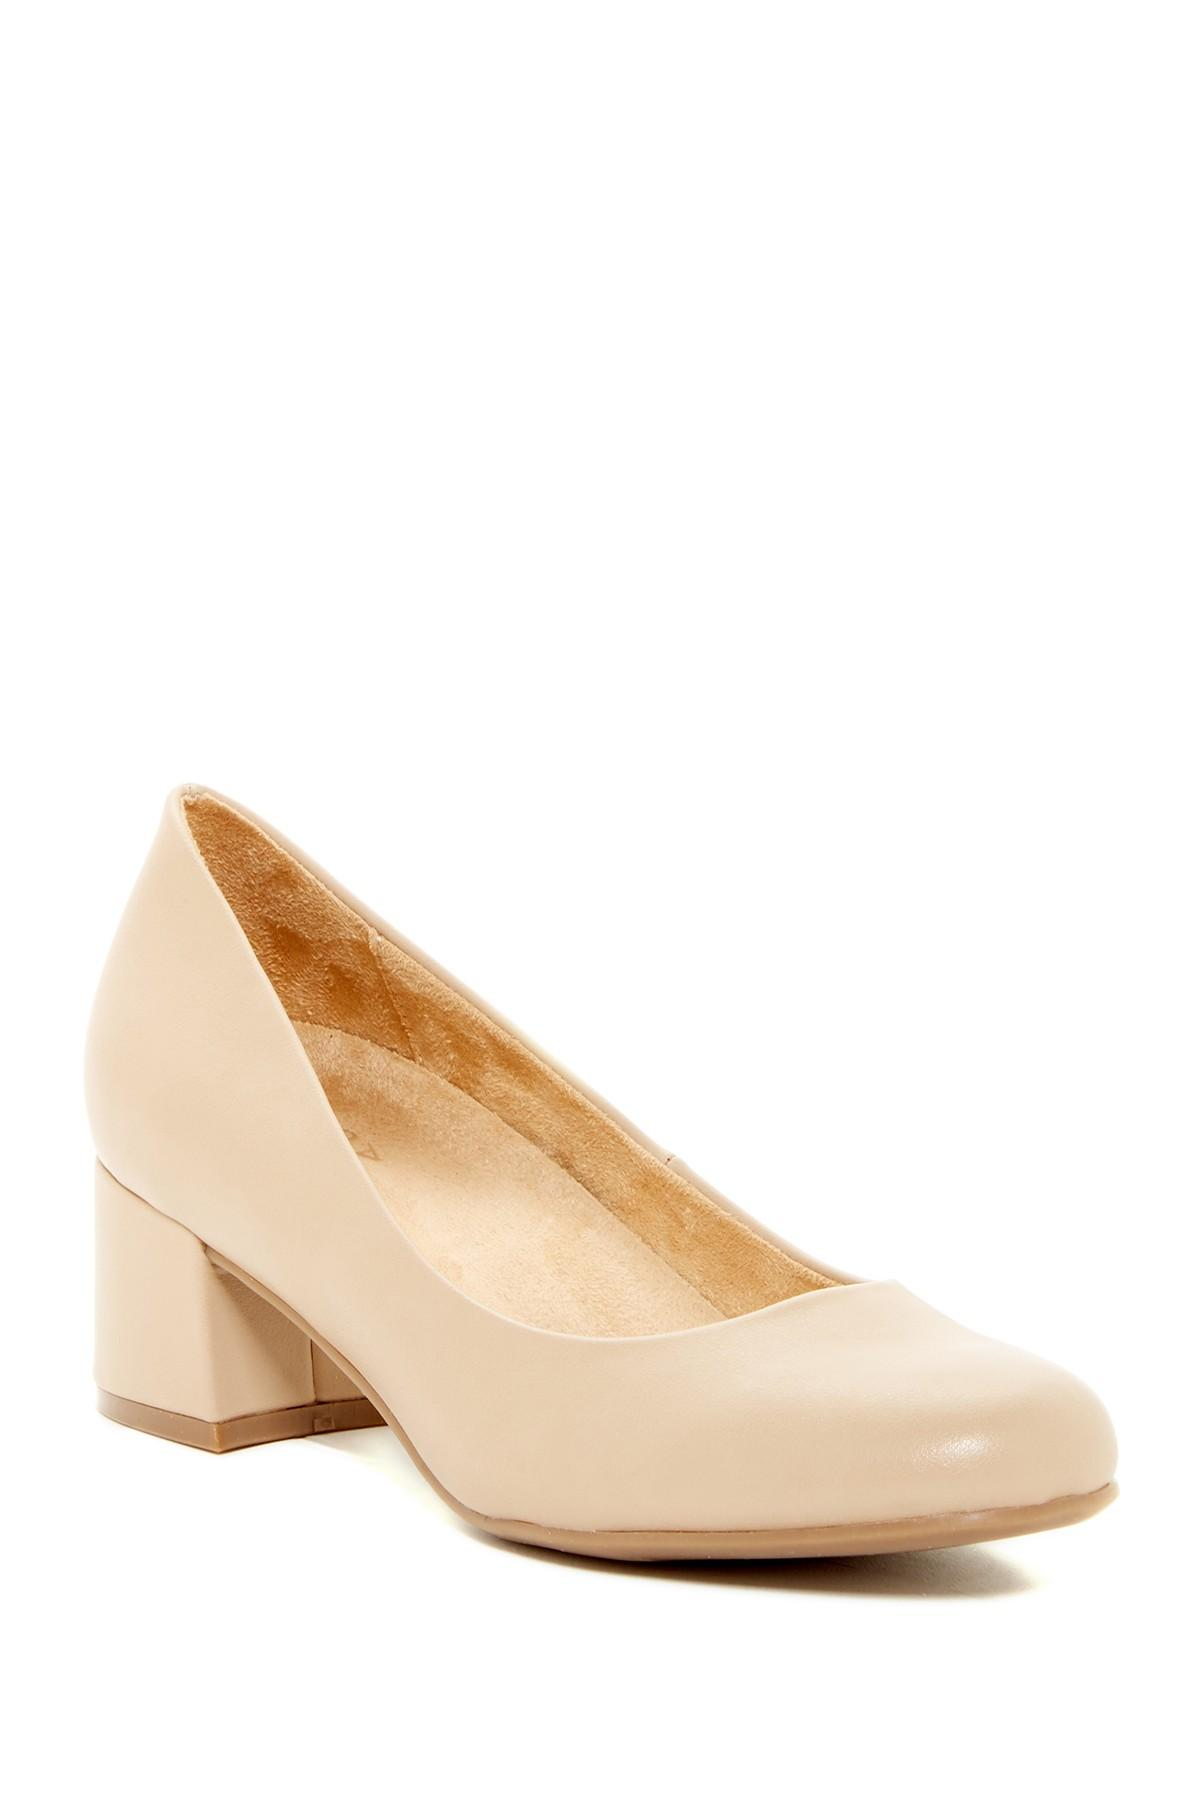 576ee8ba5e68 Lyst - Naturalizer Donelle Dress Pump - Wide Width Available in Natural